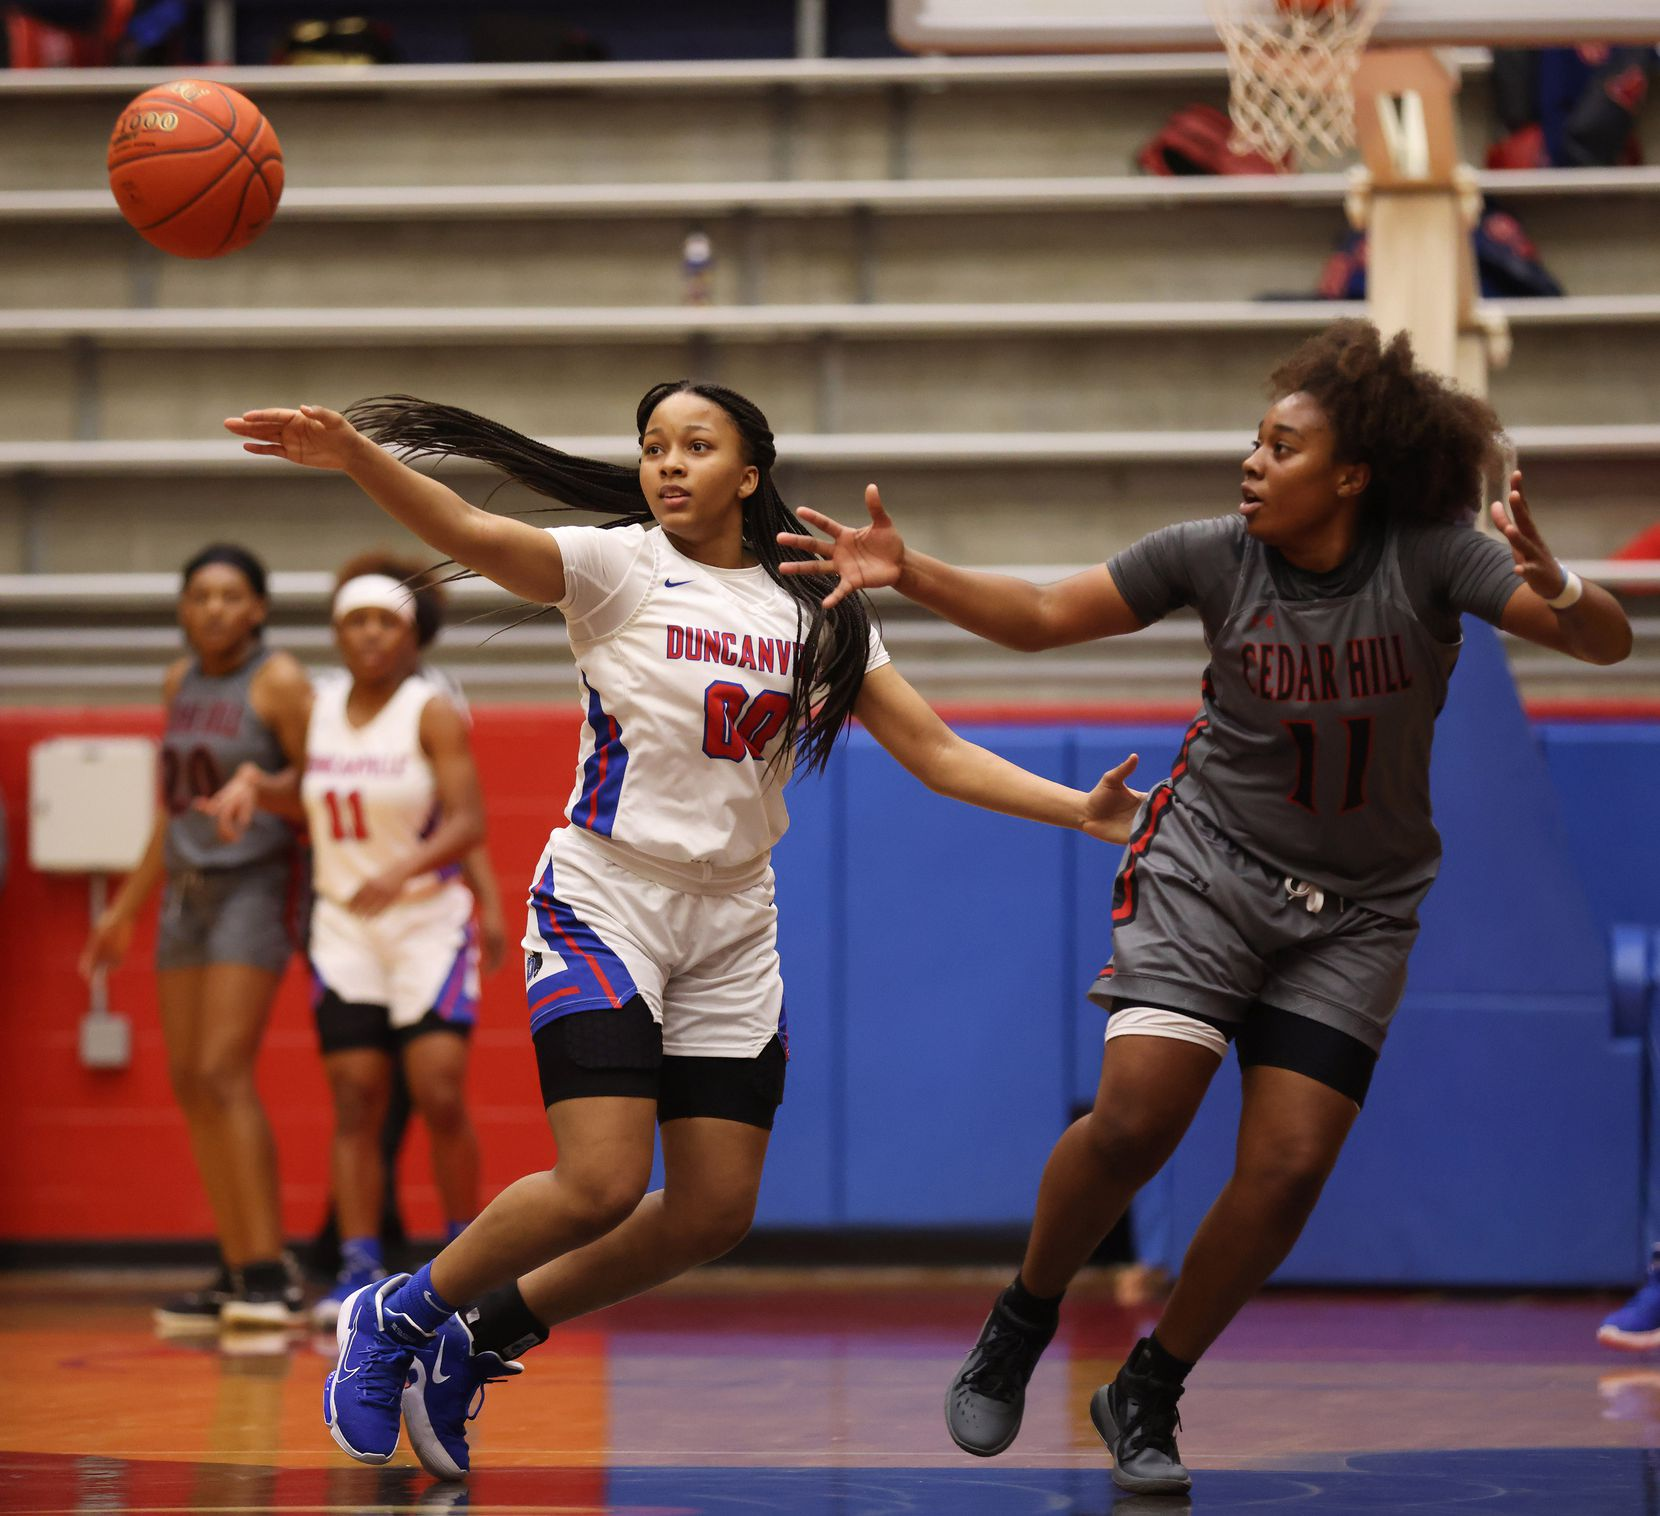 Duncanville's Hope LeMelle (00) defends as a pass makes its way towards Cedar Hill's Portia Adams (11) during the first half of play at Sandra Meadows Arena at Duncanville High School on Tuesday, January 12, 2021 in Dallas.